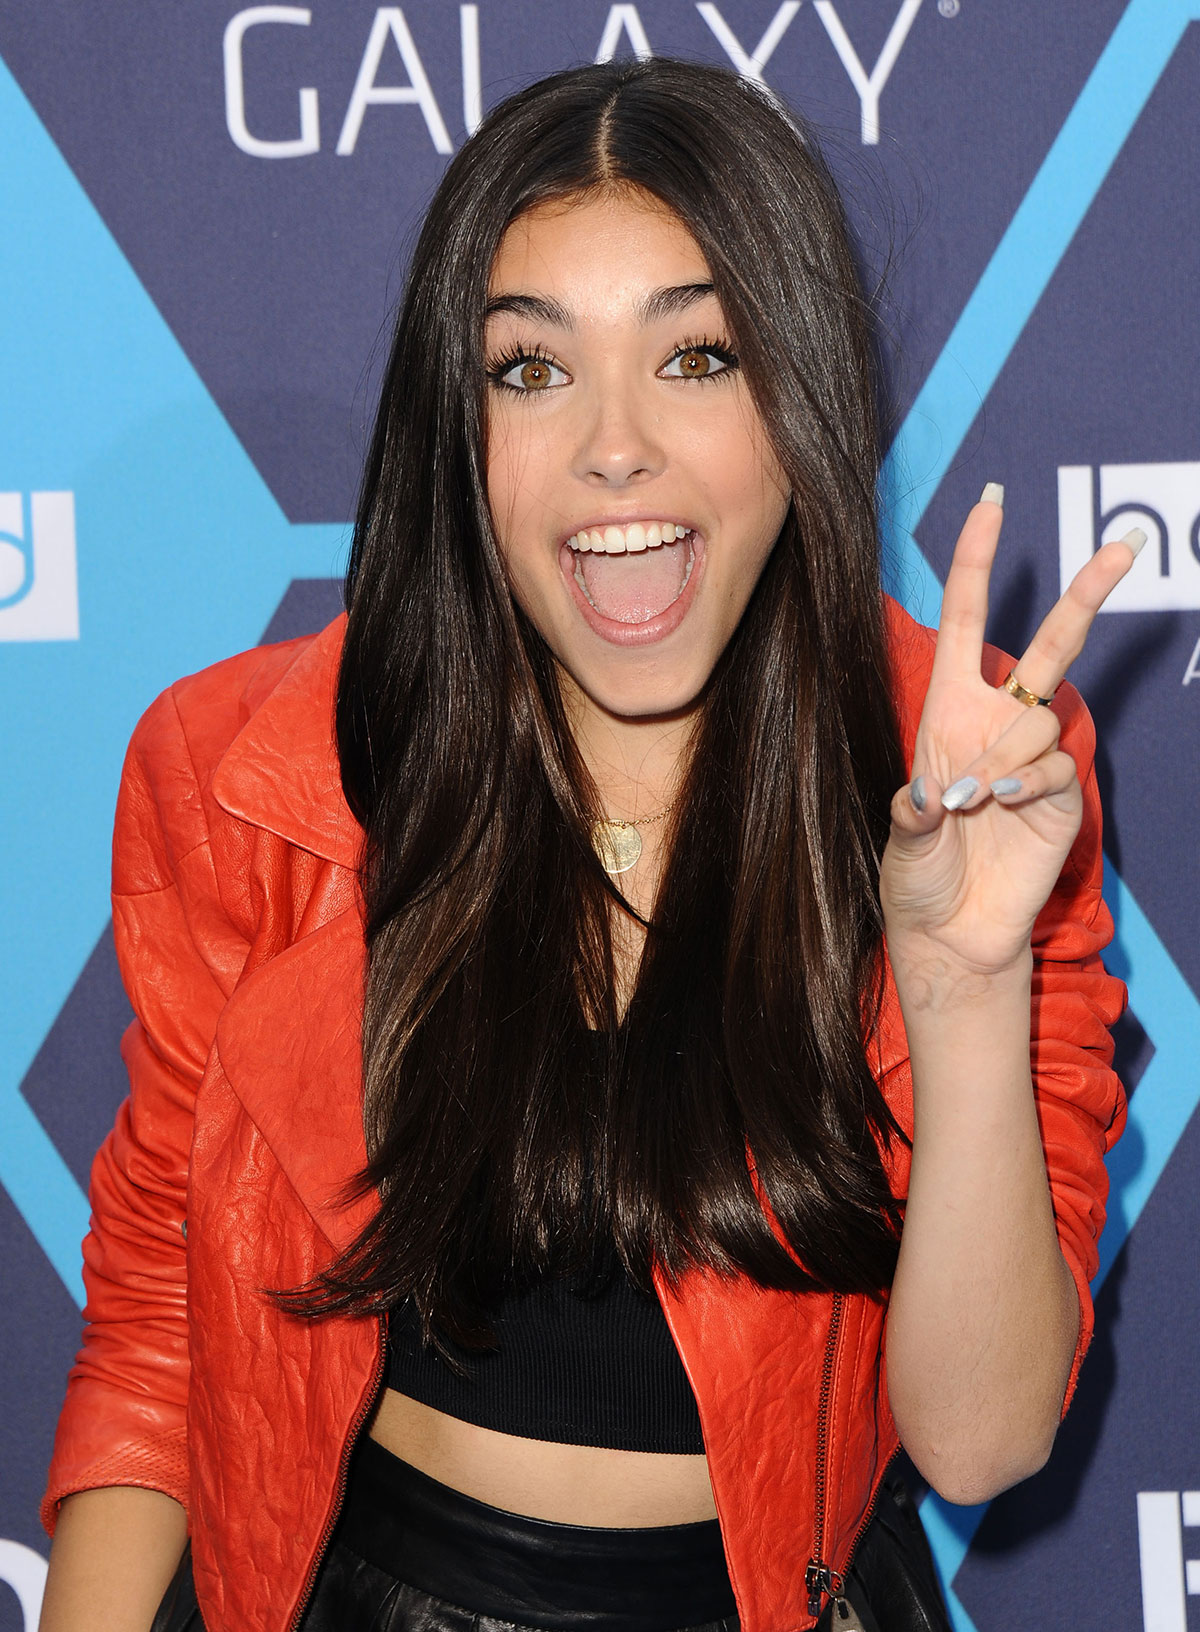 Madison Beer attends 2014 Young Hollywood Awards